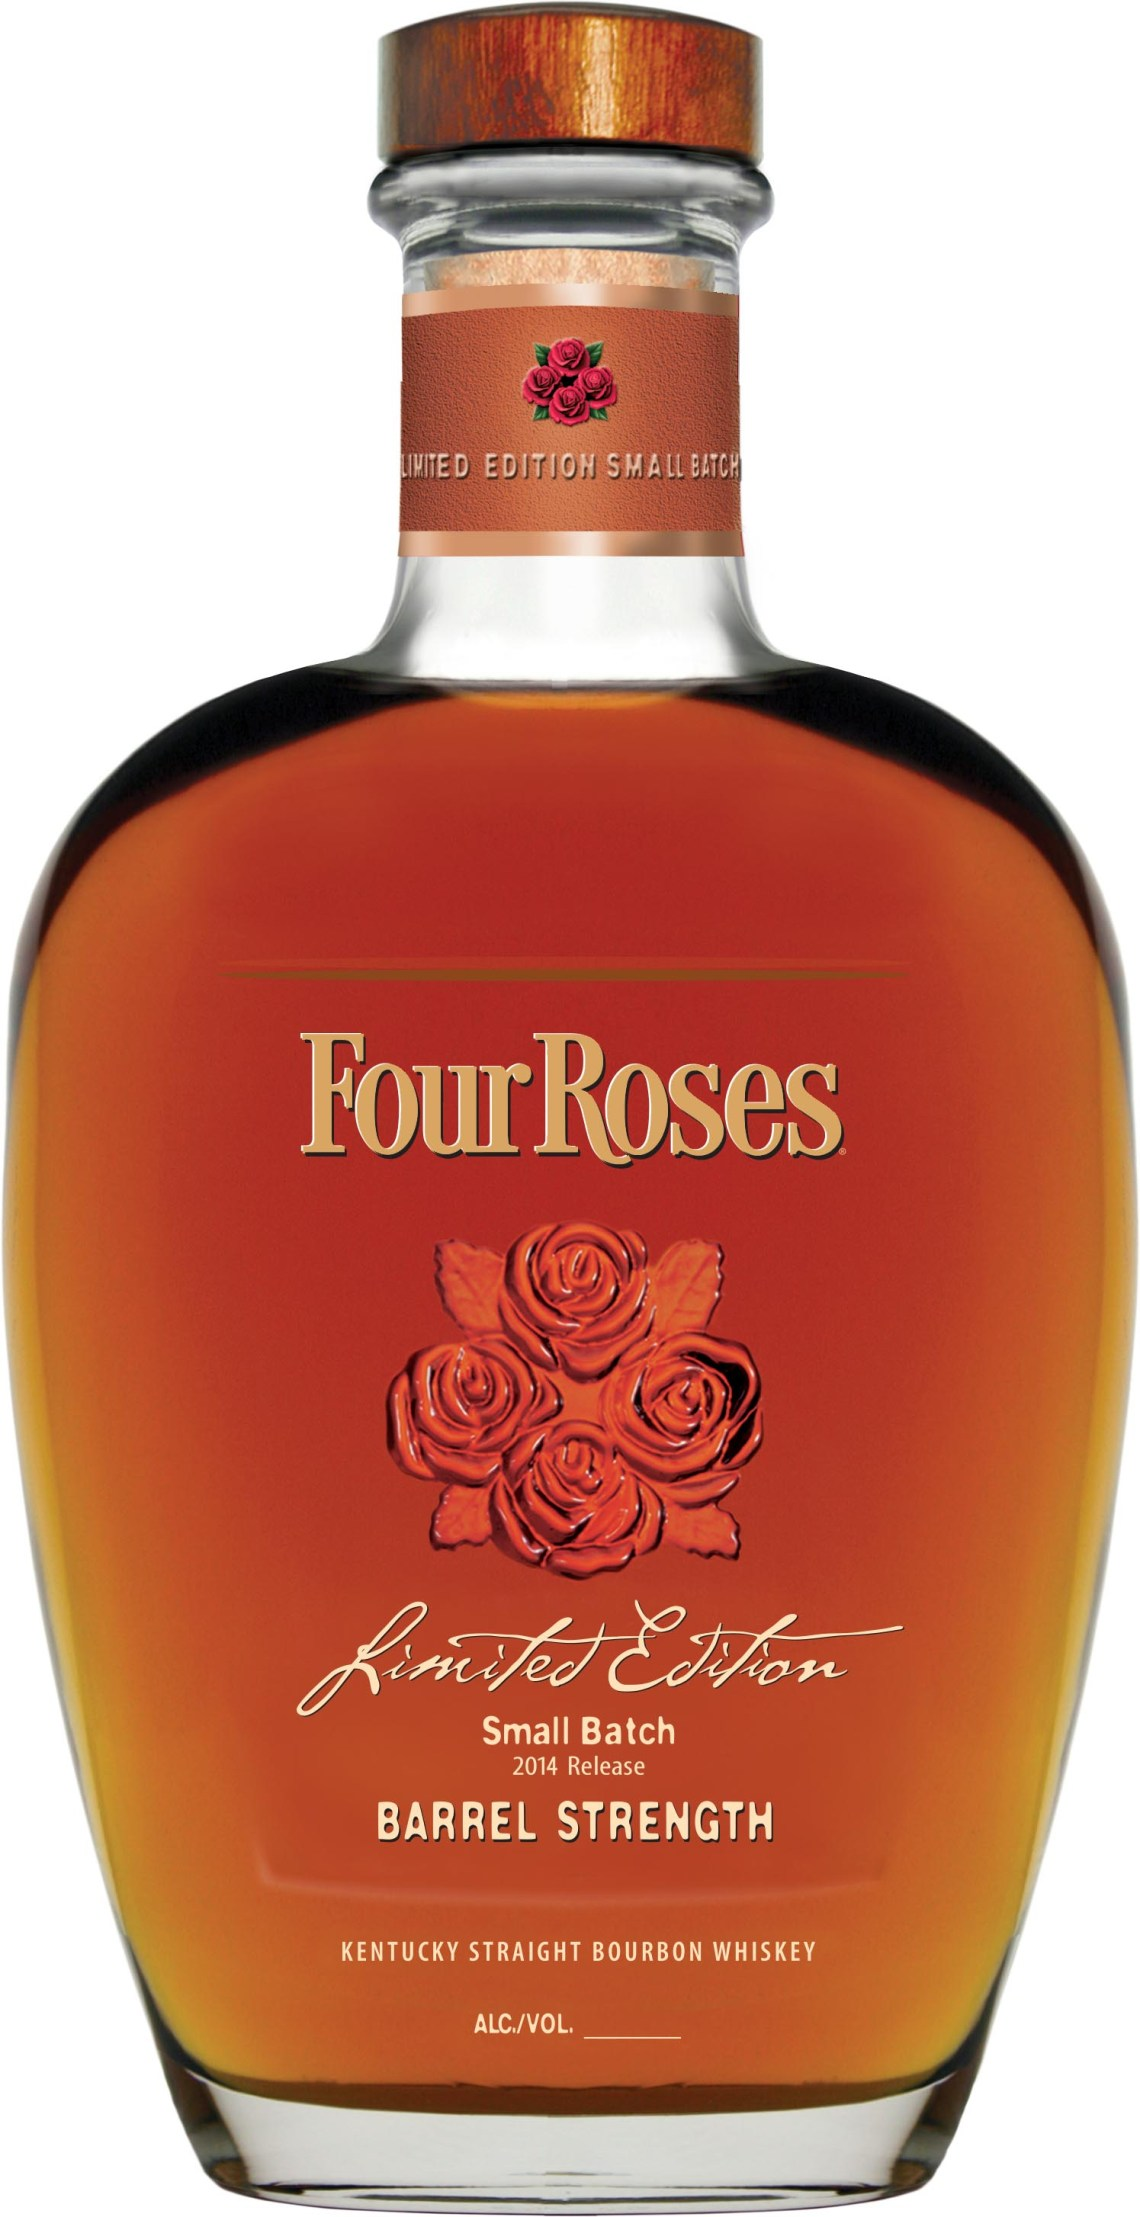 Four Roses Limited Edition Small Batch Bourbon 2014 Edition